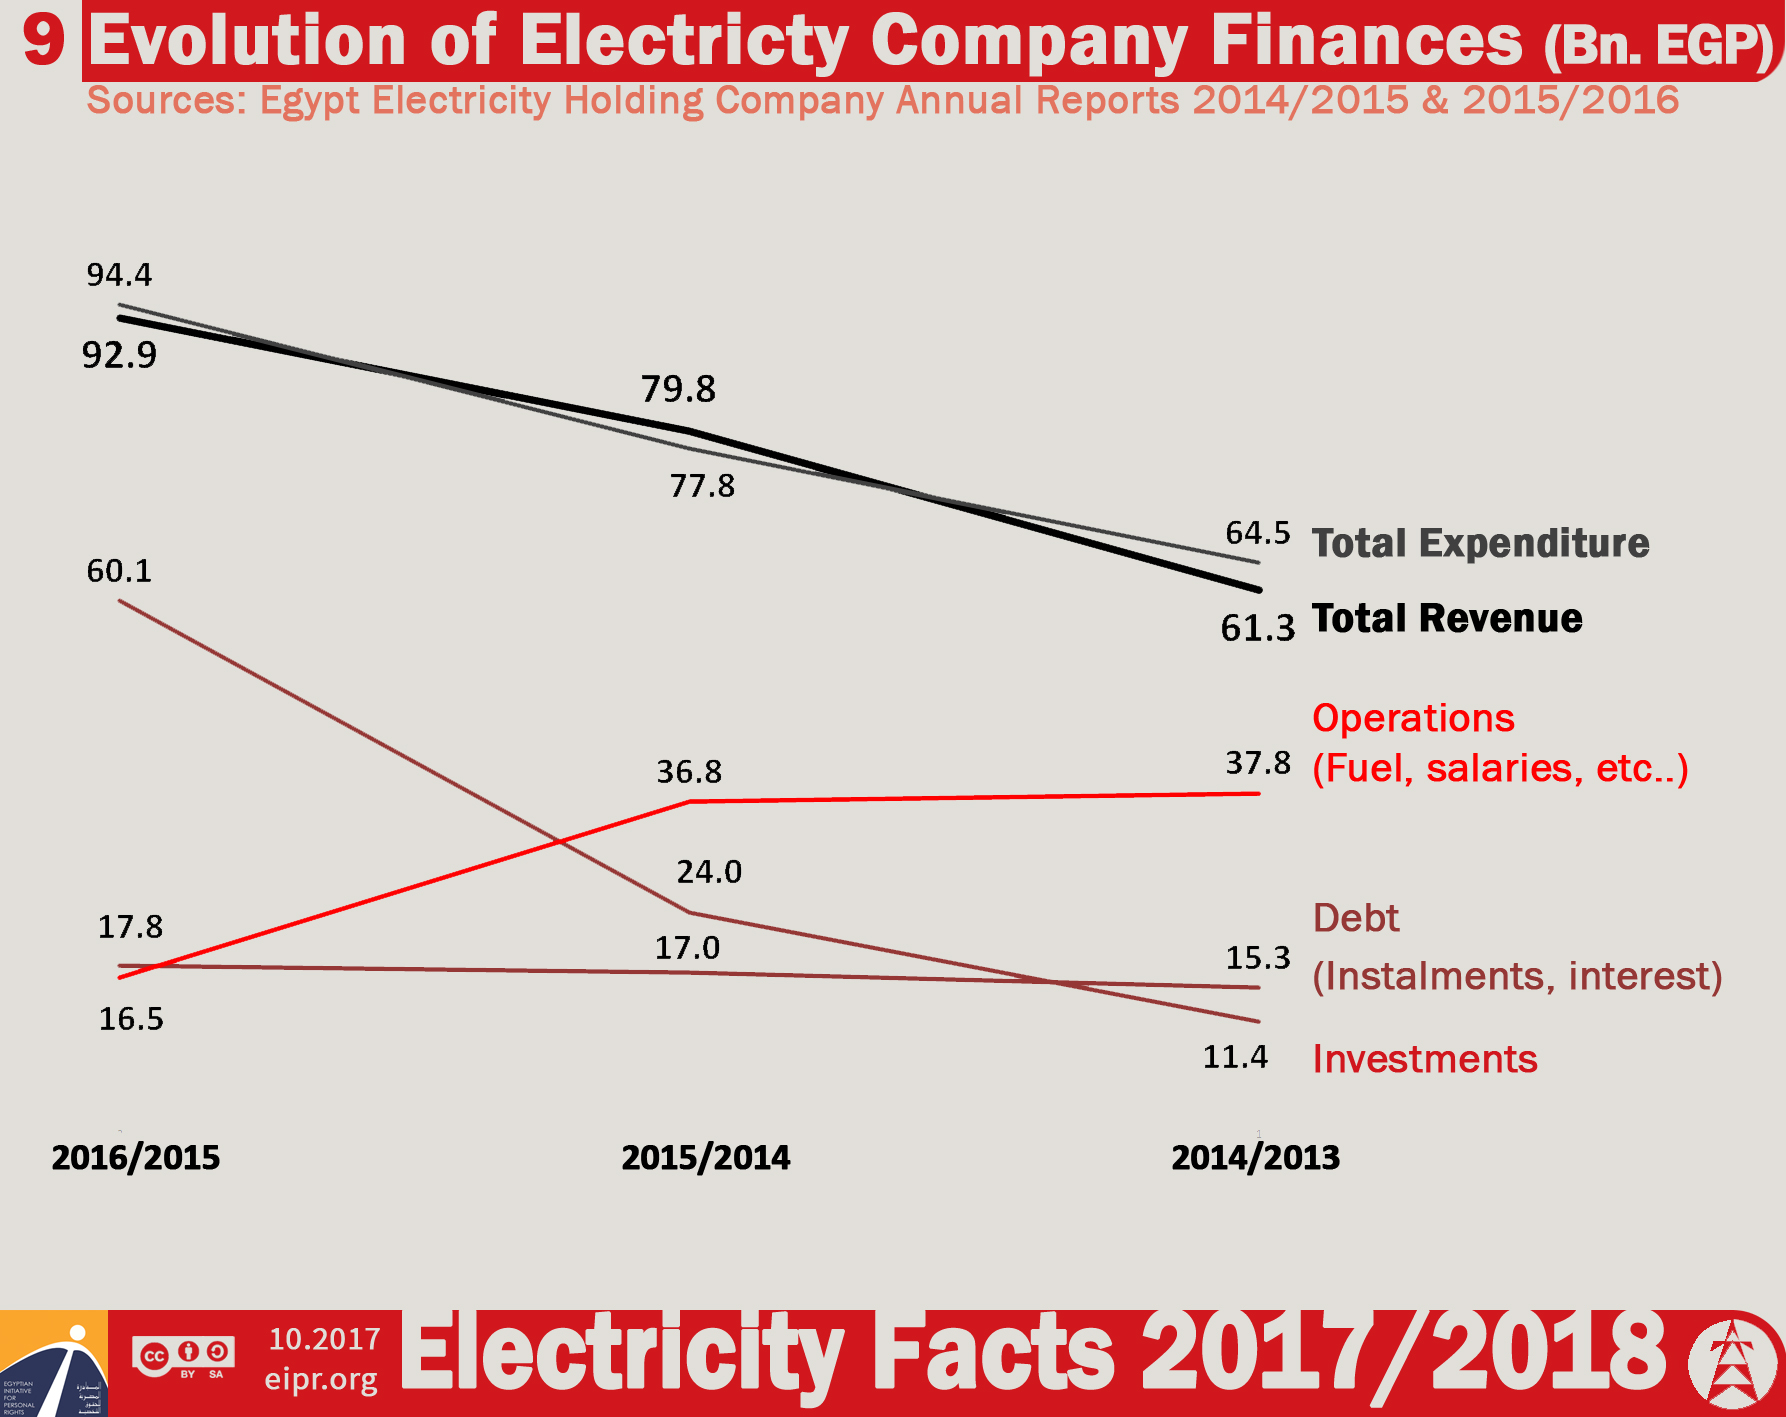 Electricity Facts 2017/2018 Price hikes continue | Egyptian